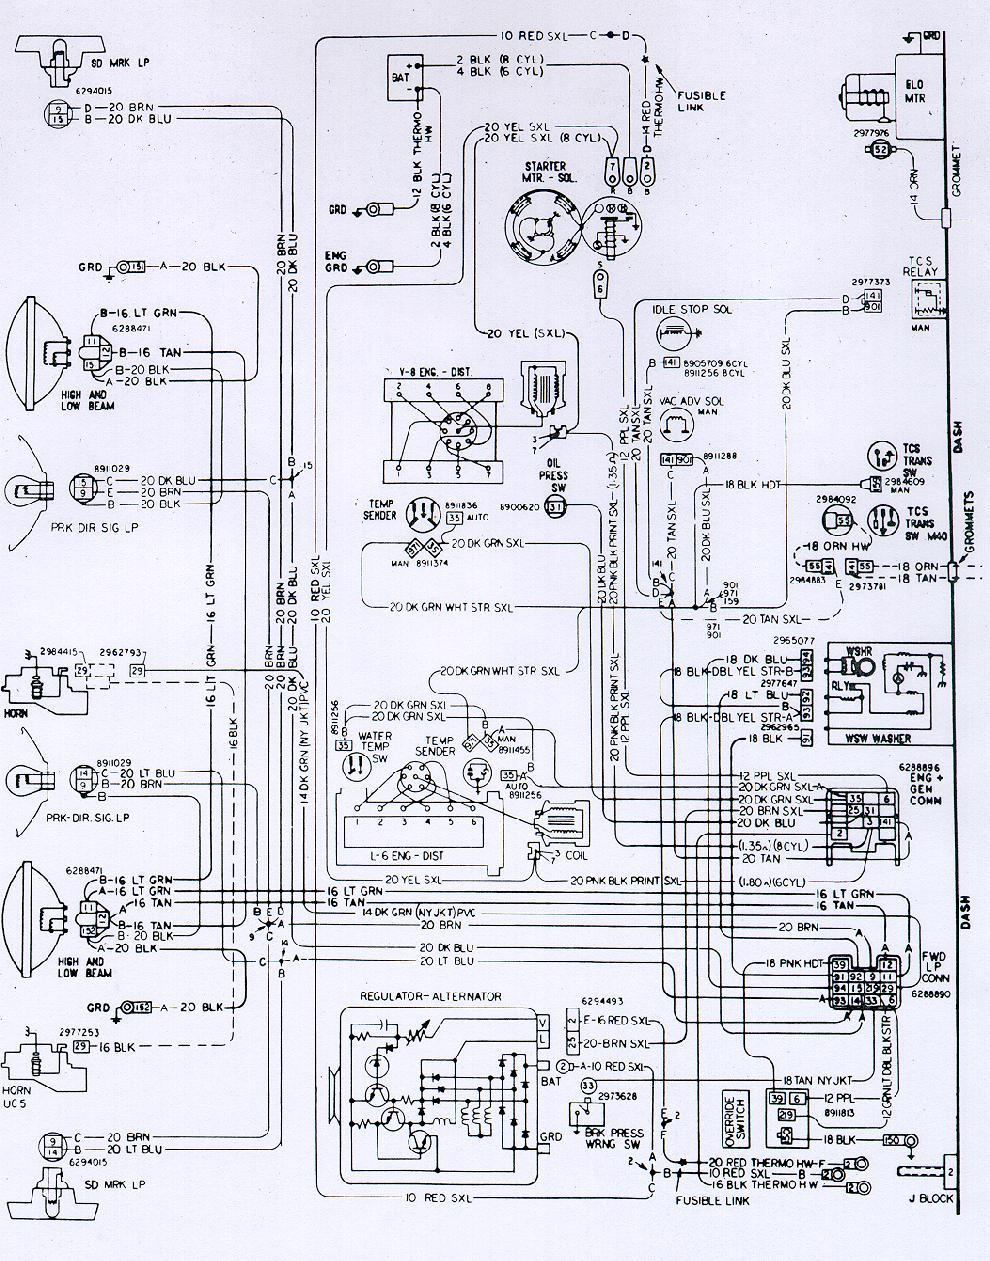 hight resolution of 68 caprice wire diagram simple wiring diagram rh 40 mara cujas de 1968 impala 1968 chevy caprice wiring diagram